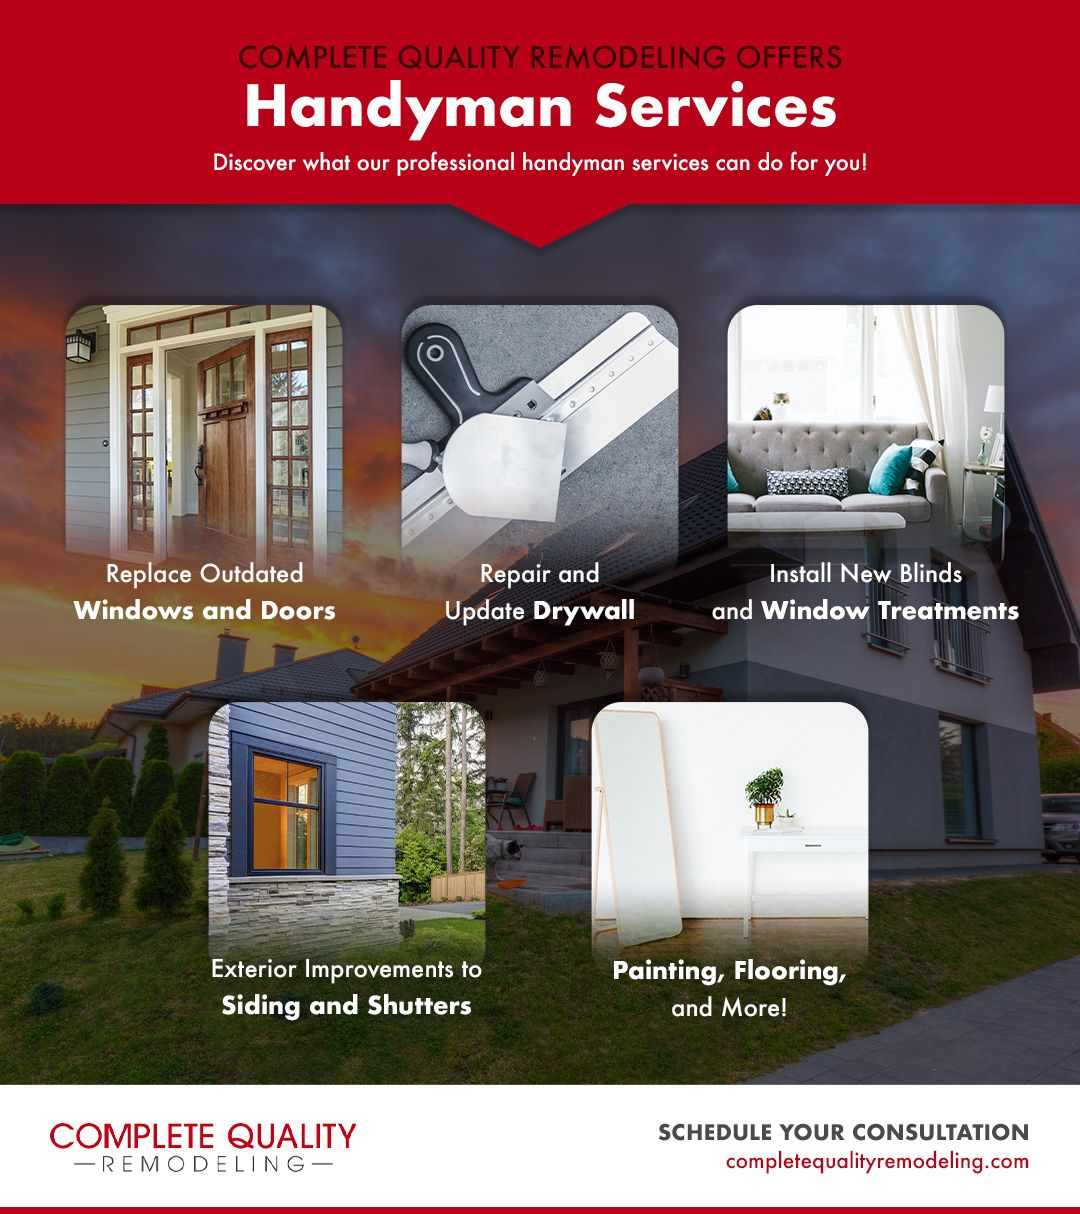 Complete Quality Remodeling Offers Handyman Services.jpg